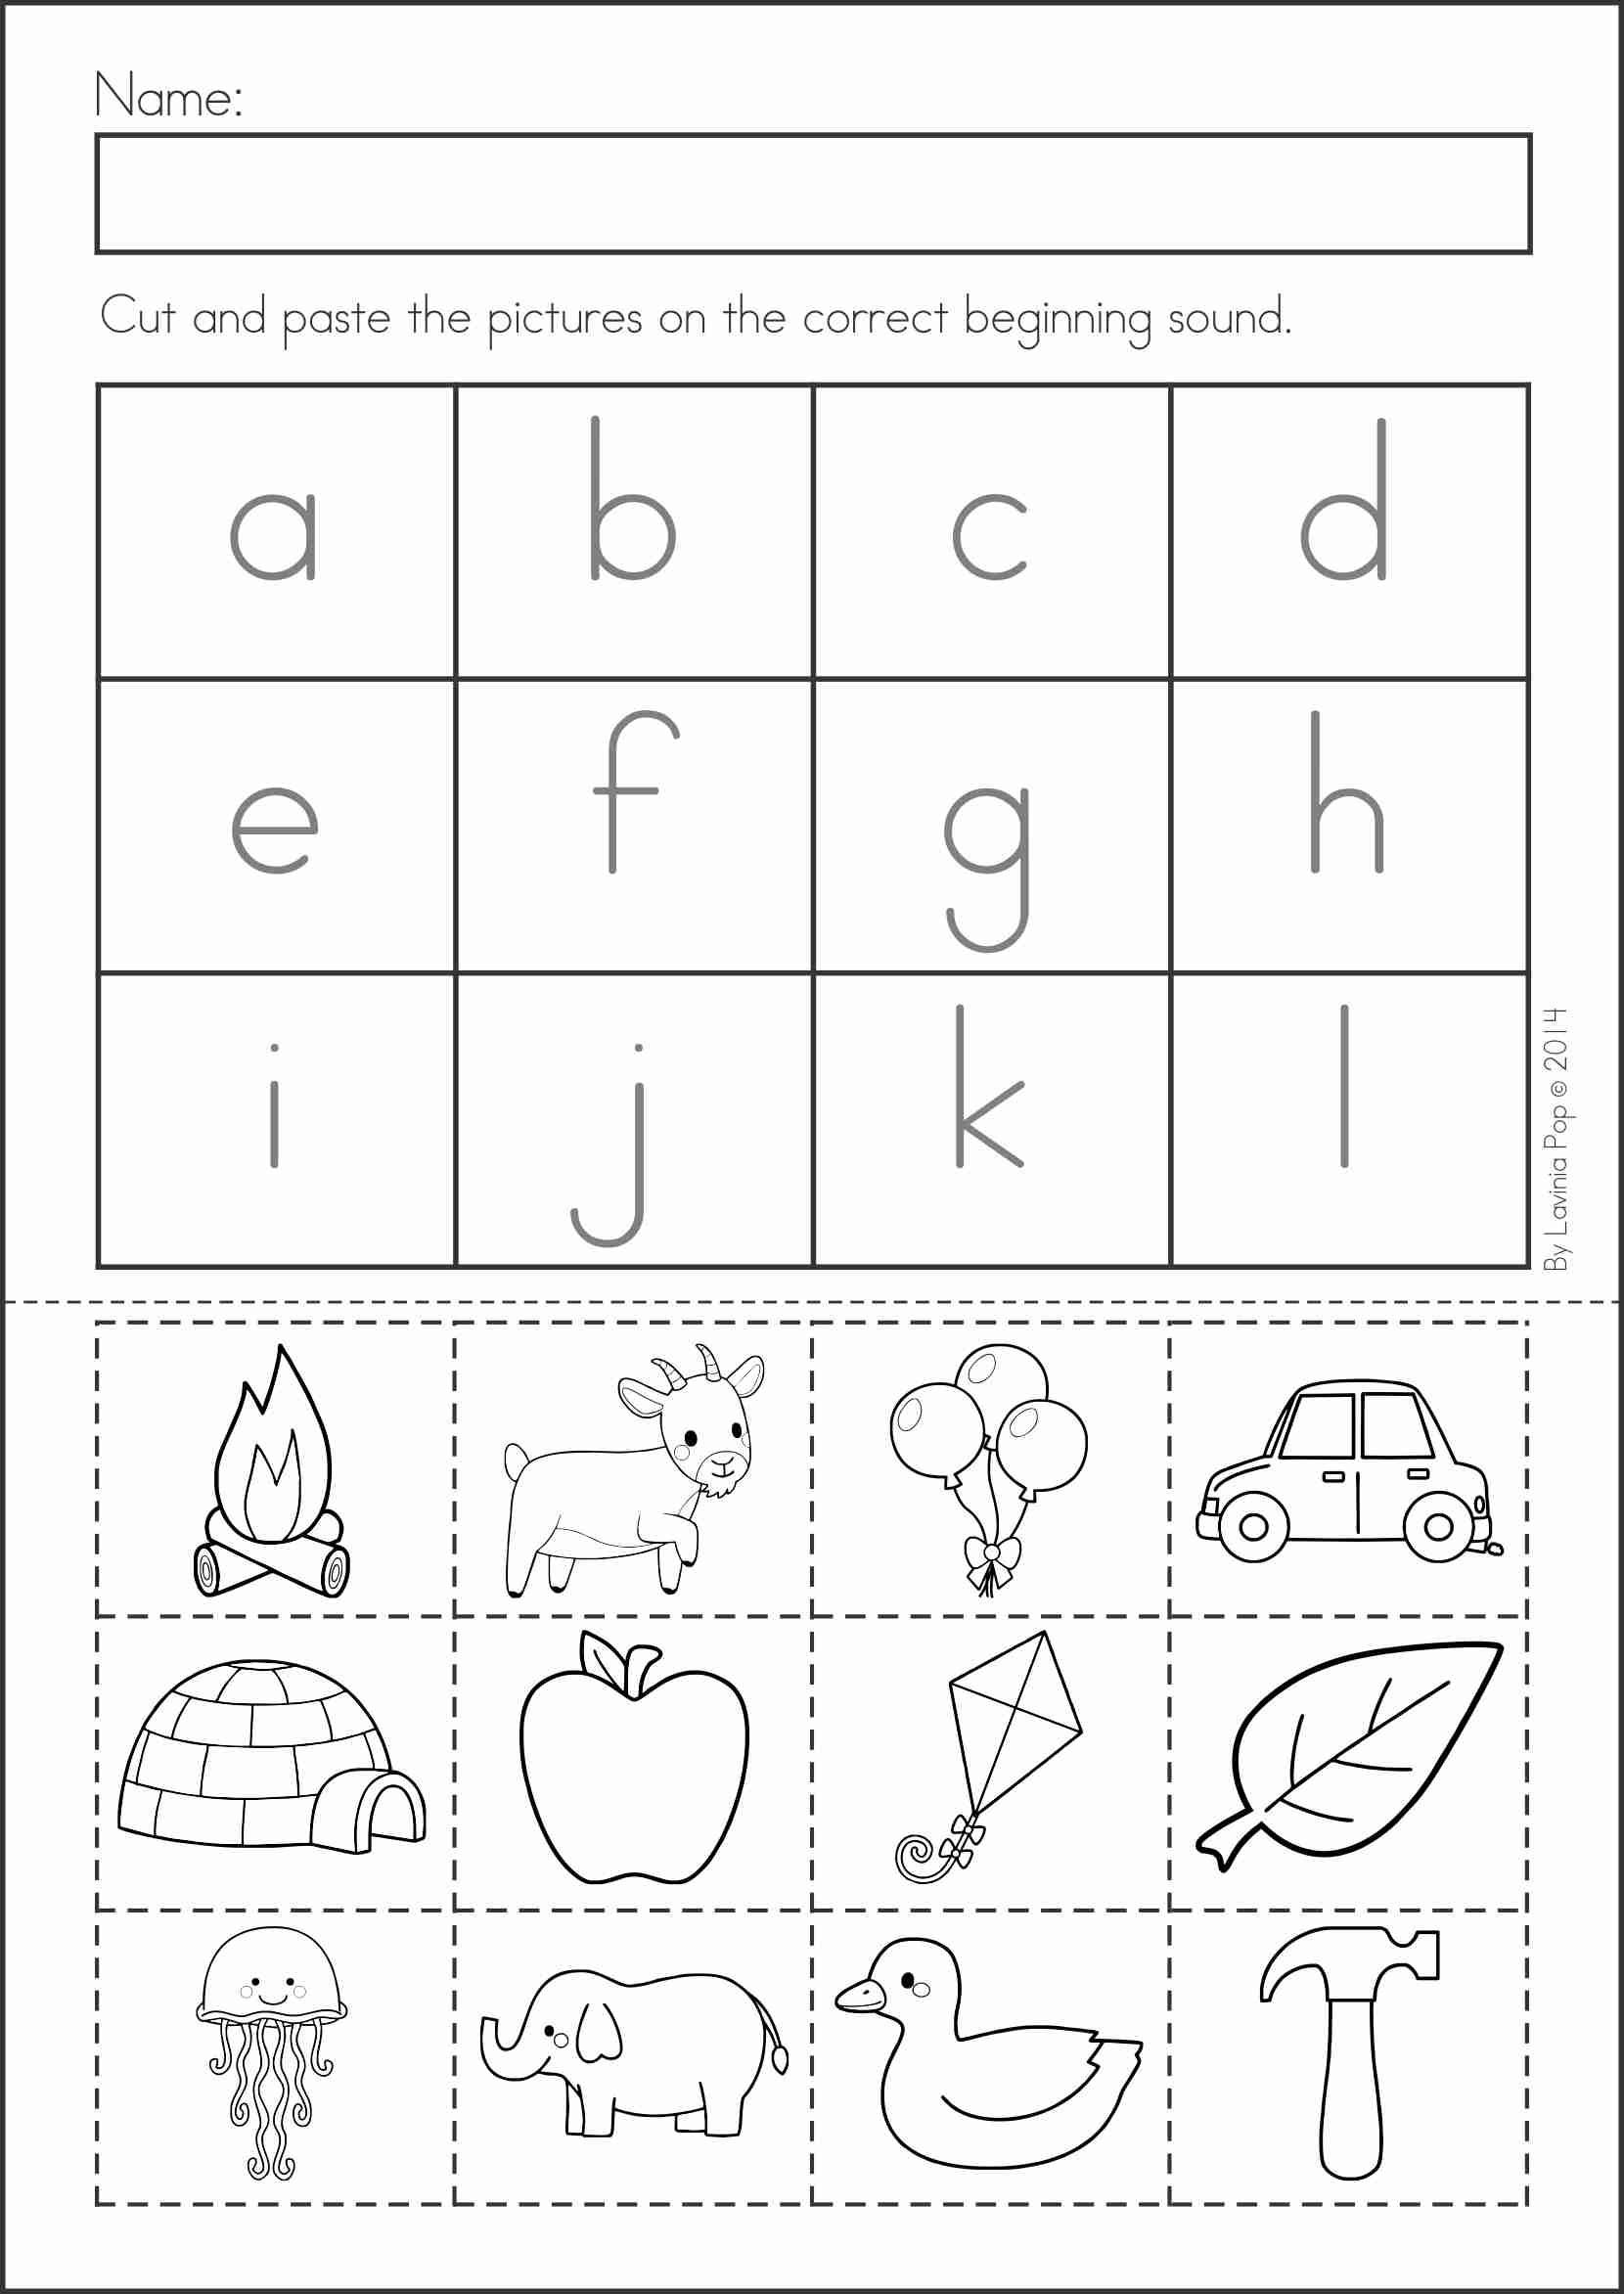 Summer Review – Cut and Paste Worksheets for Preschoolers